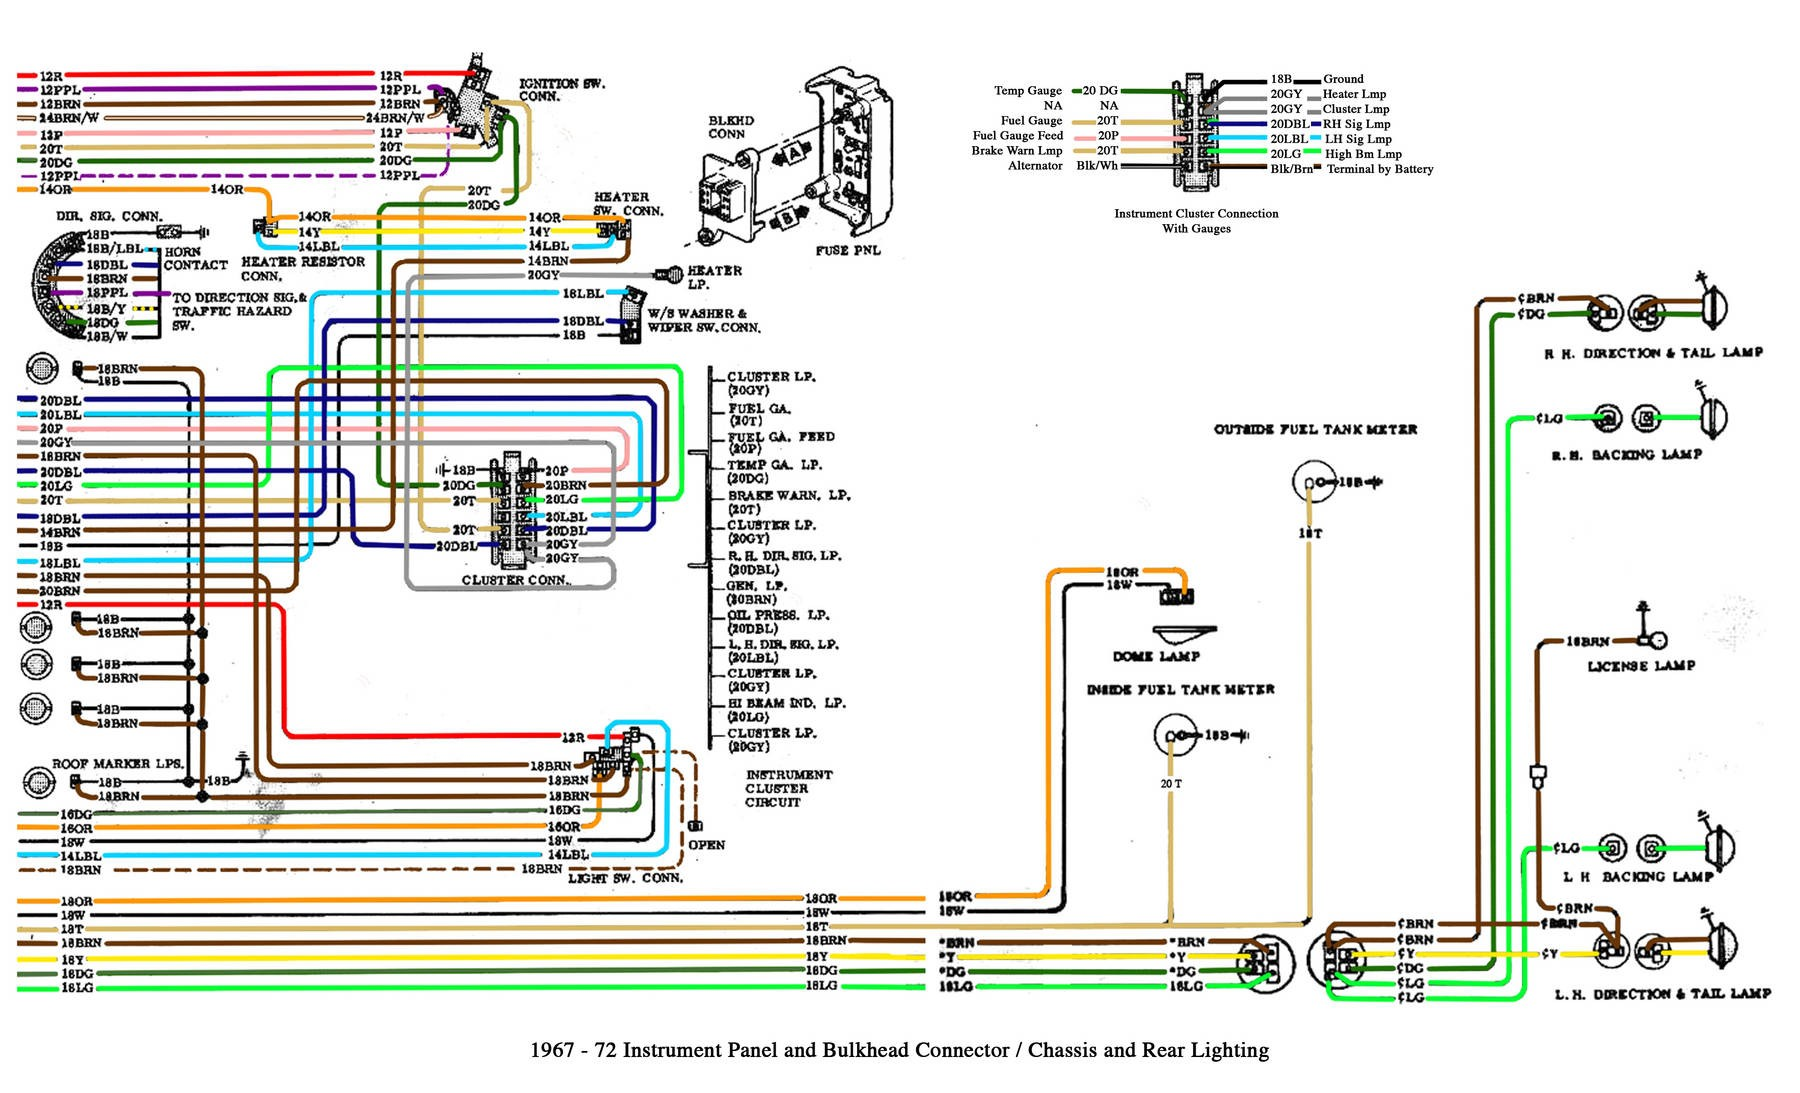 hight resolution of 1995 ford f150 5 0 engine diagram panel diagram 1997 ford 1988 ford f150 fuel pump